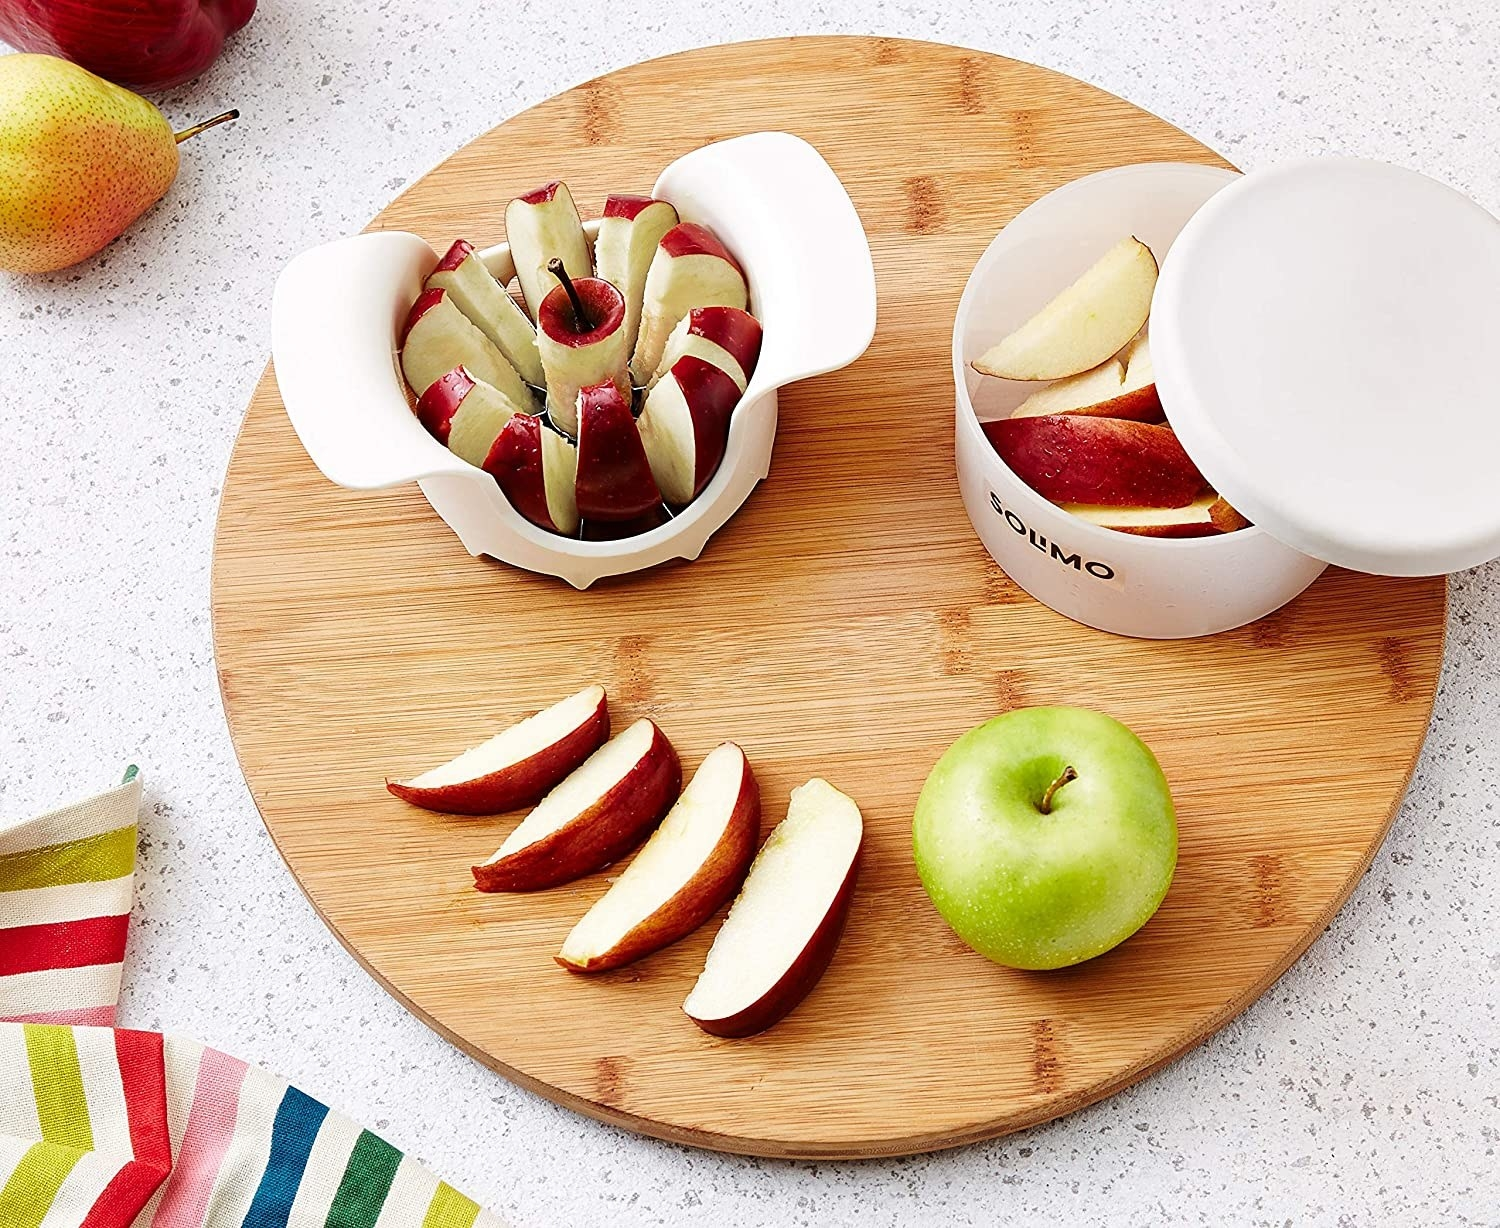 An apple cutter with cut apples and a box with apples in it